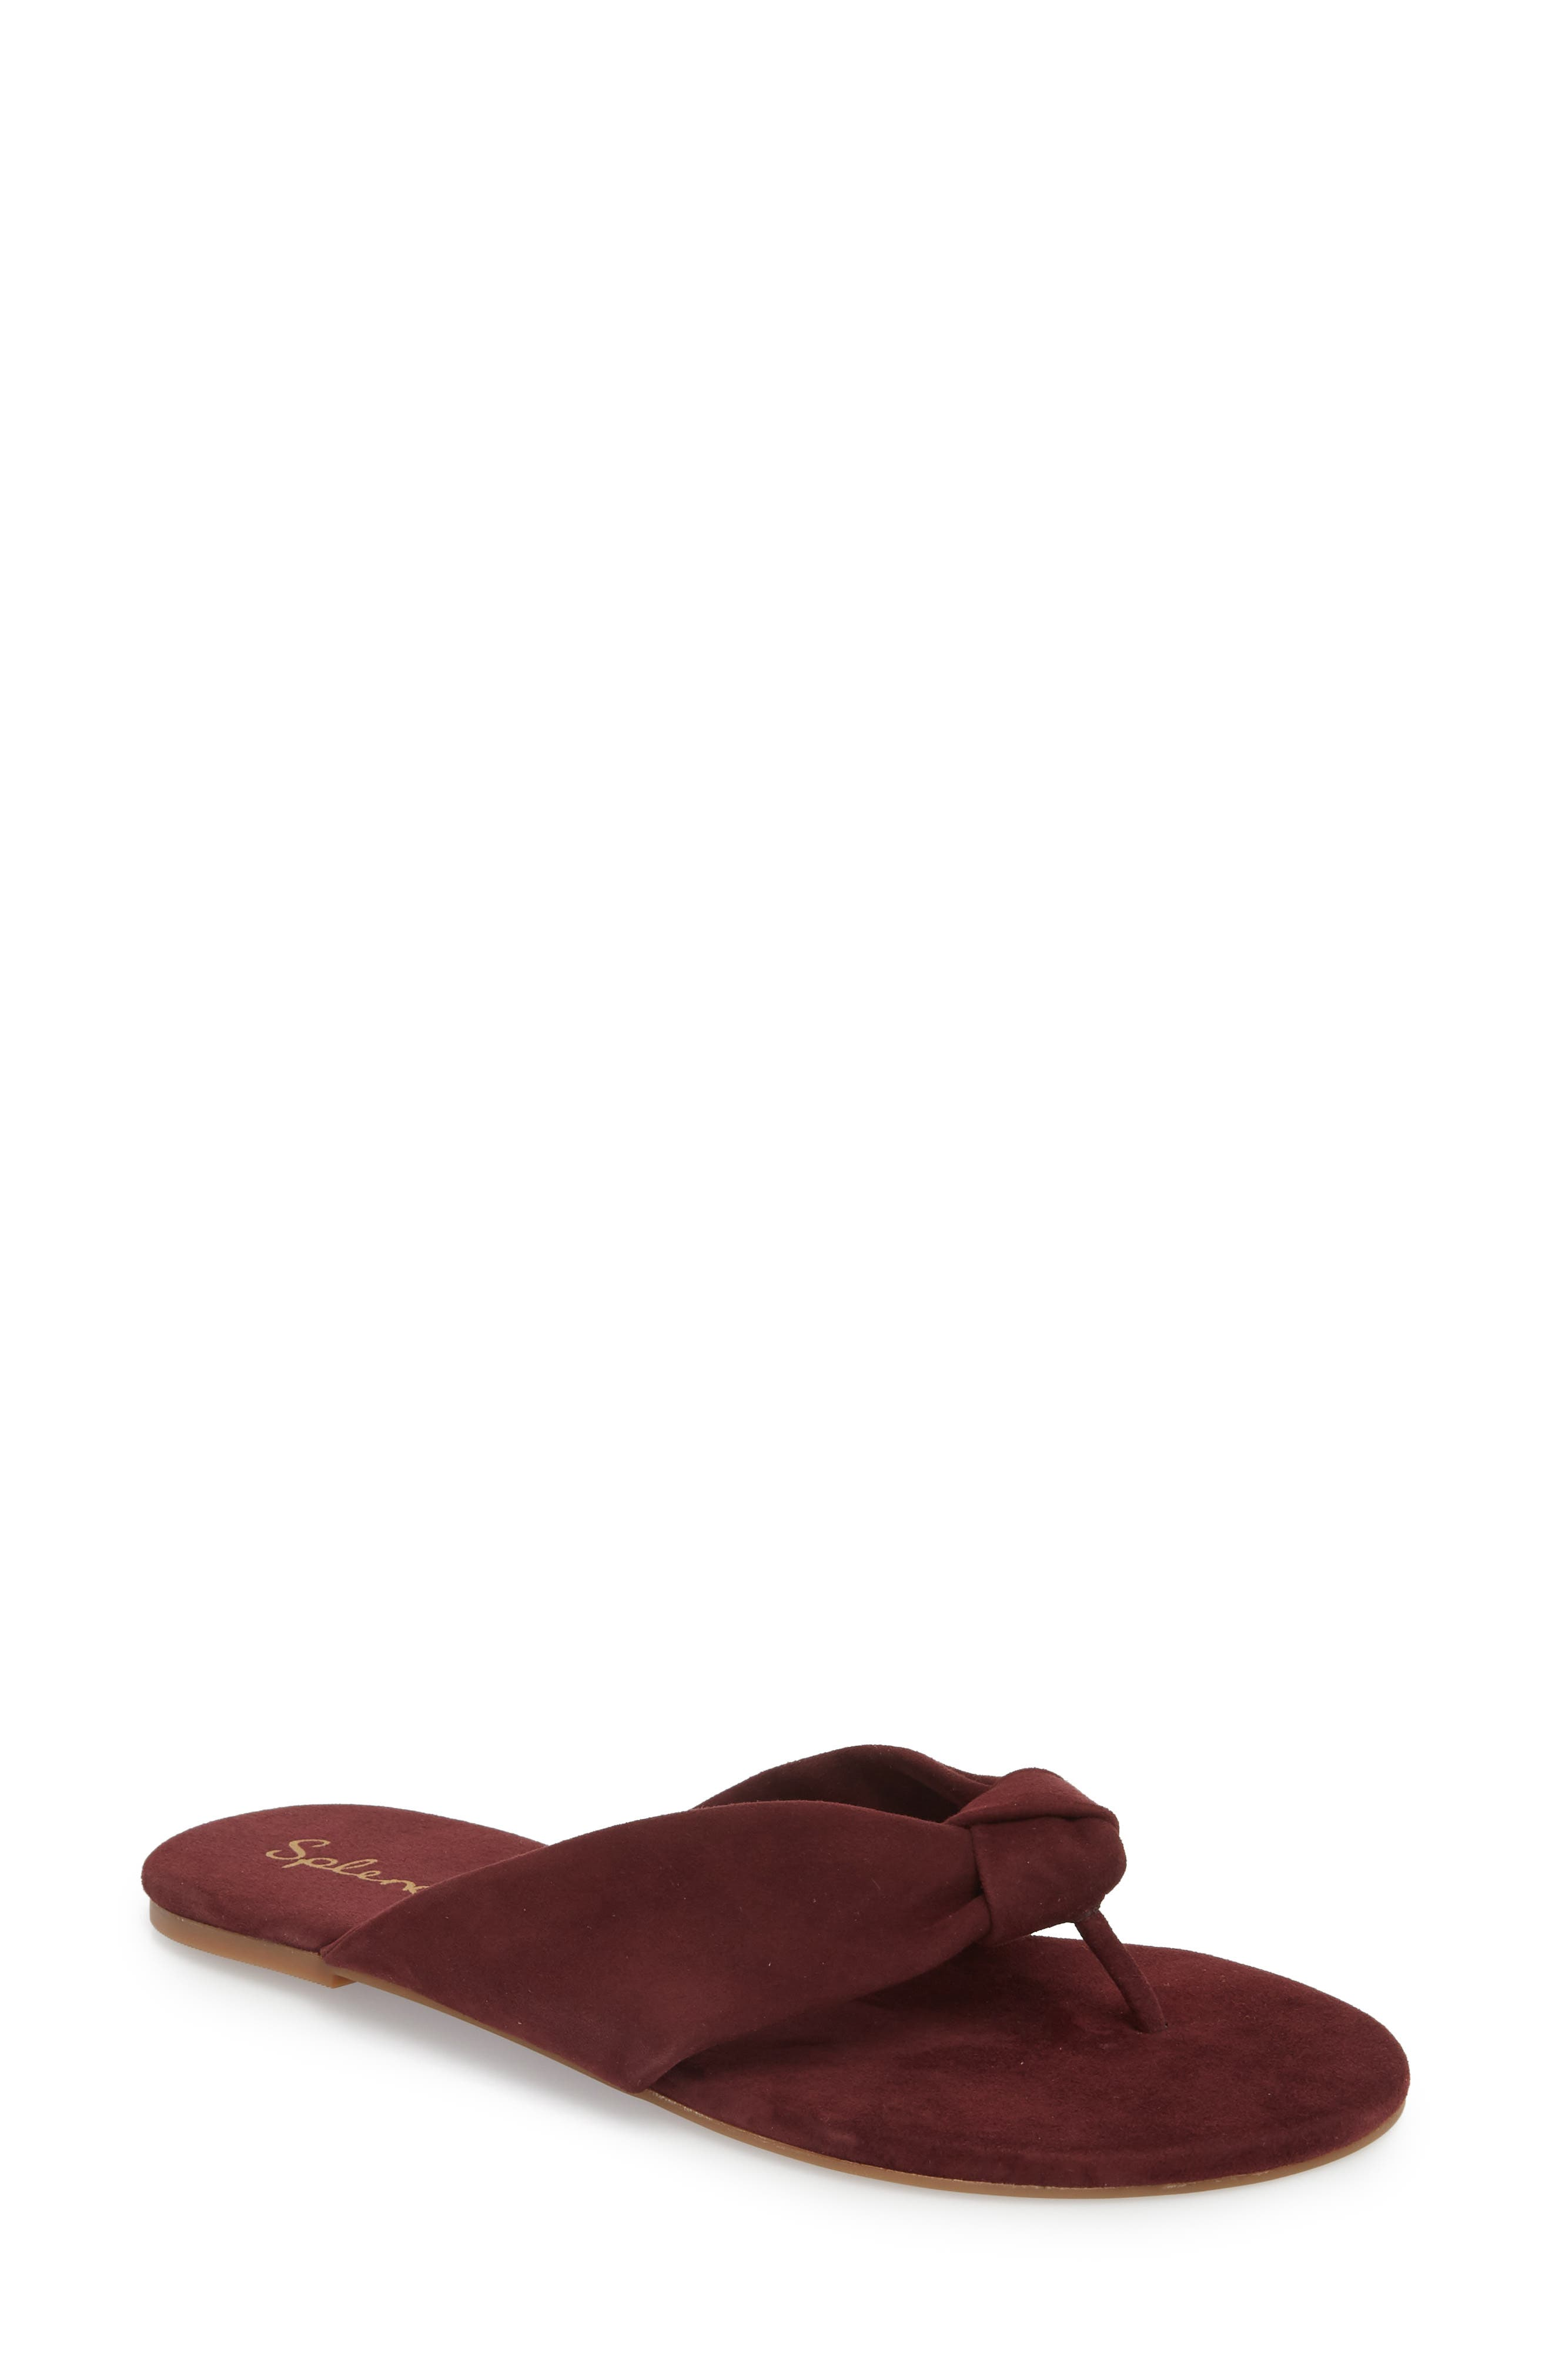 Splendid Bridgette Knotted Flip Flop (Women)